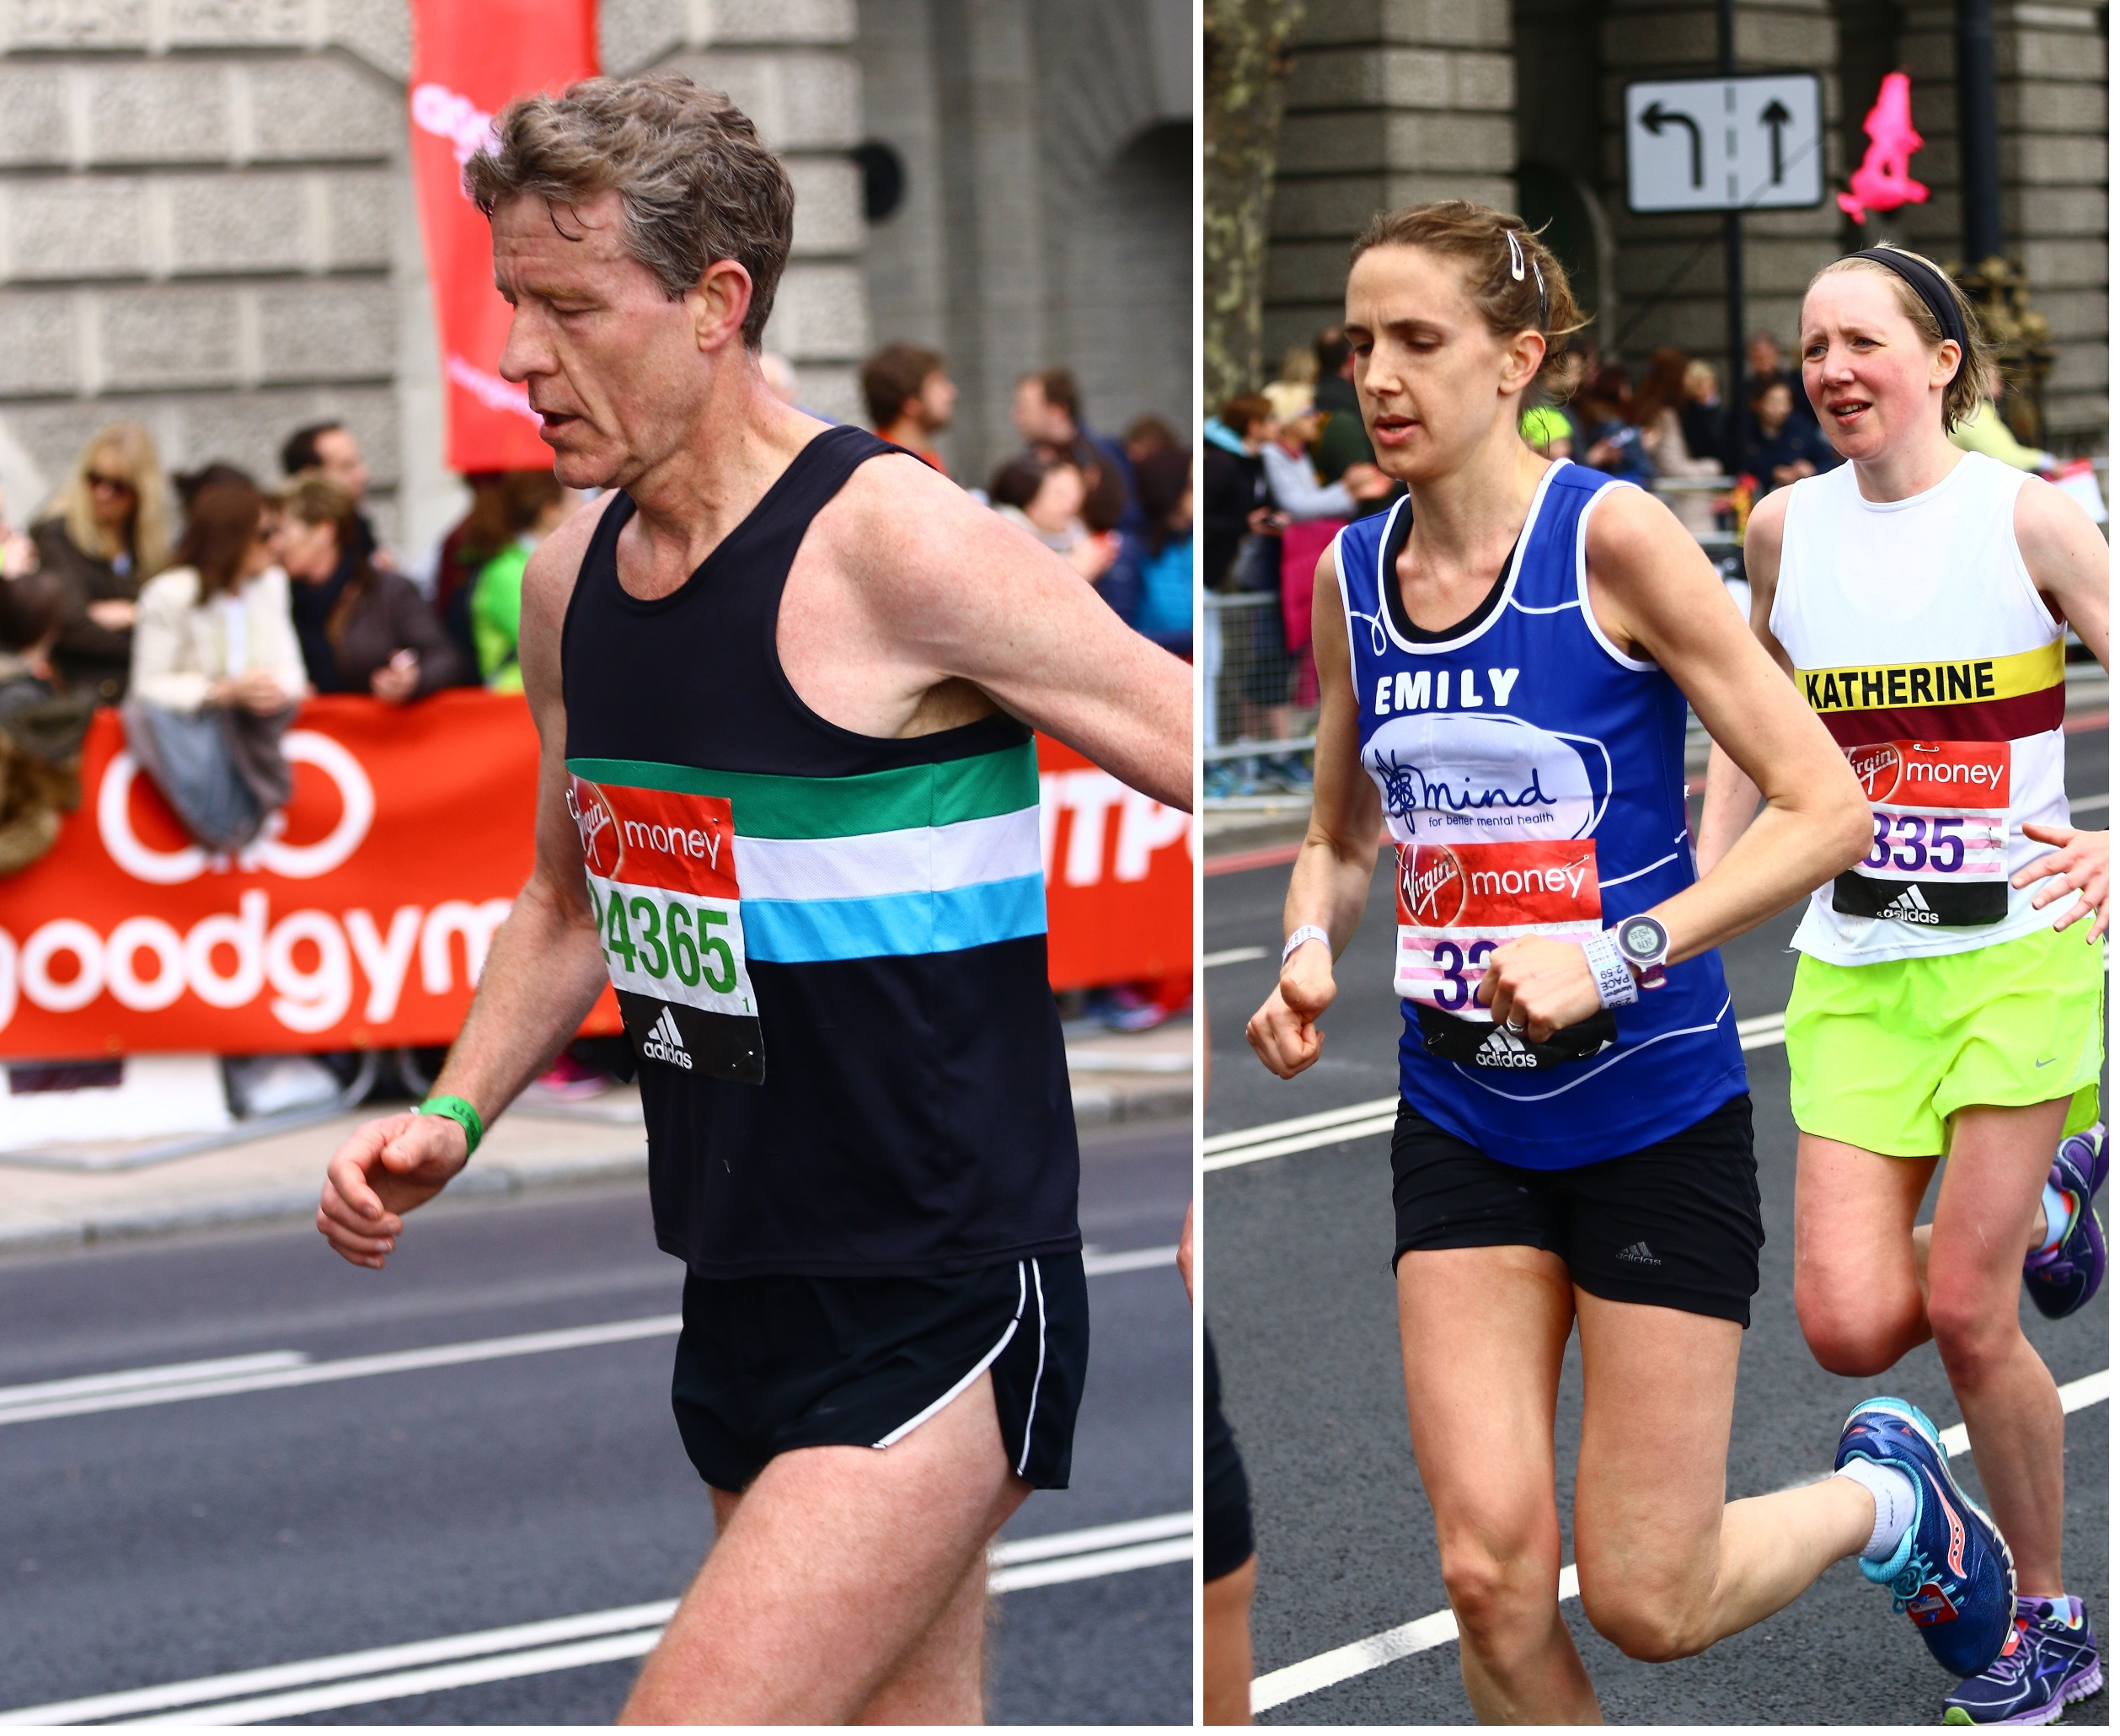 Chris Finill and Emily Antcliffe in the London Marathon